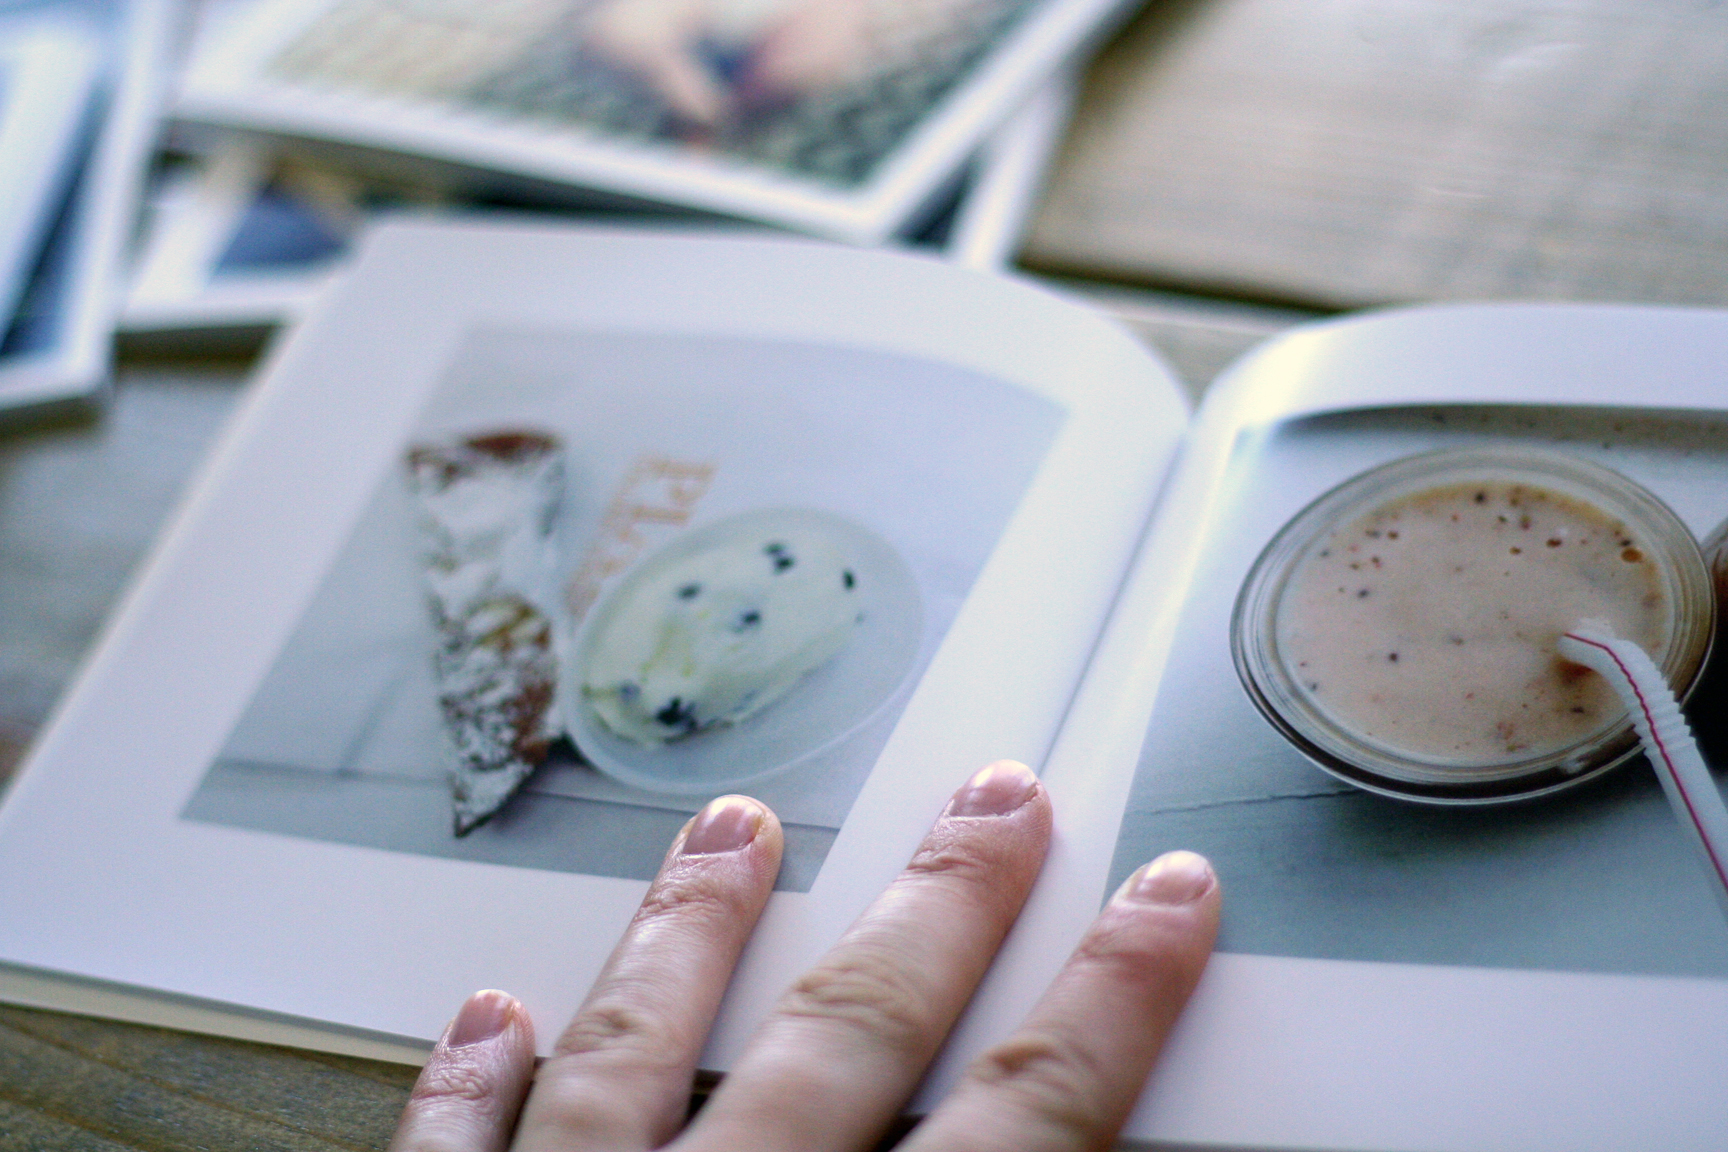 a lazy scrapbooker's dream - auto order Instagram photo books witch Chatbooks